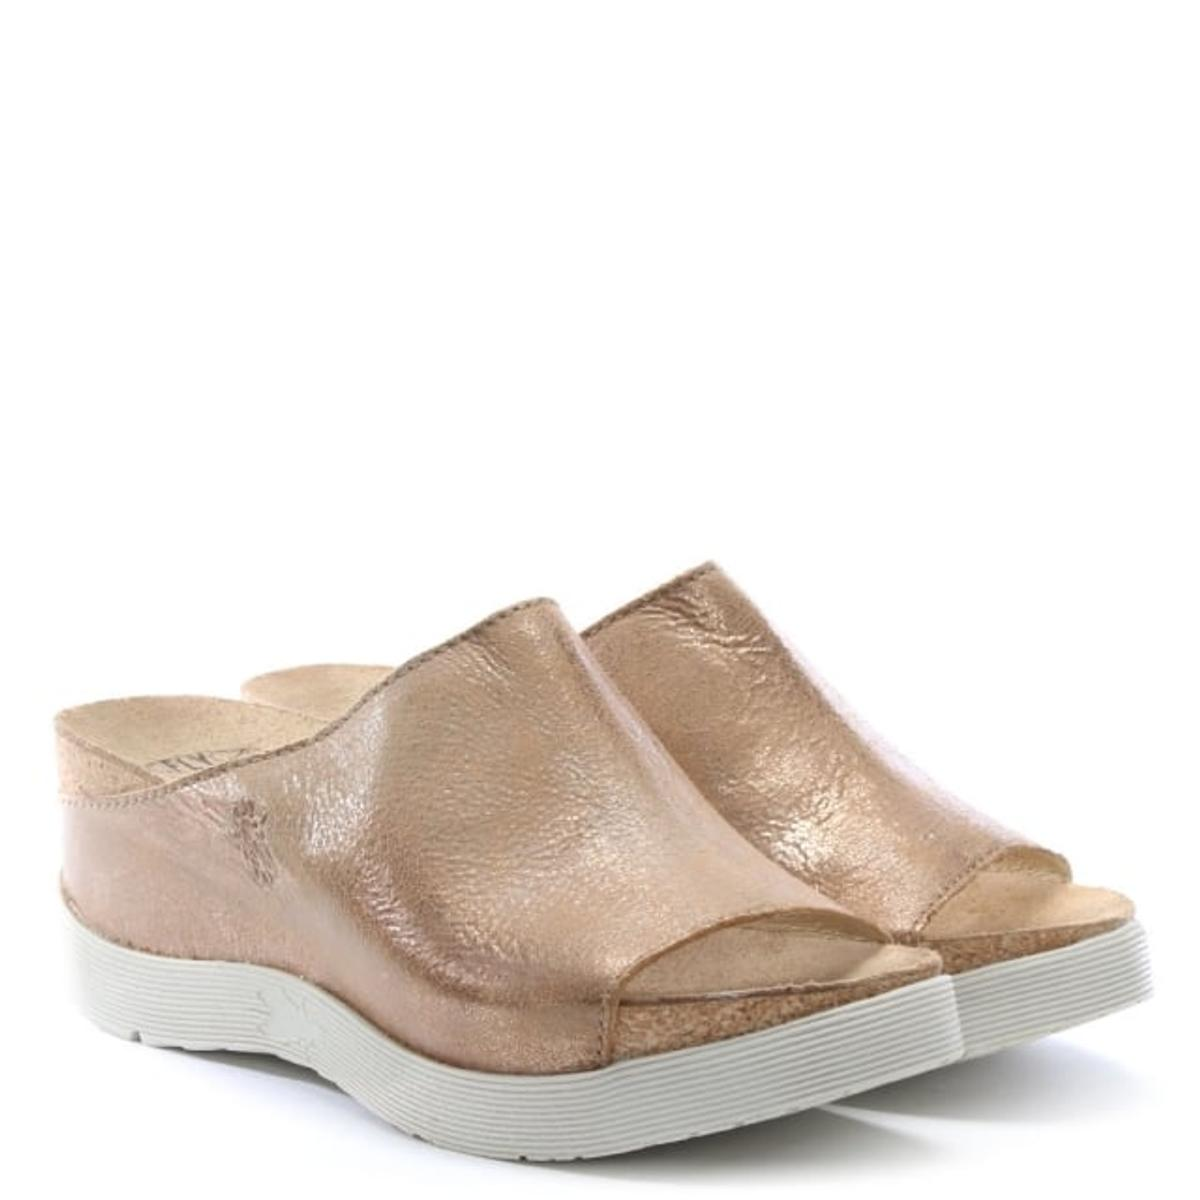 FLY LONDON Wigg Gold Wedge Mules Uk7 NEW